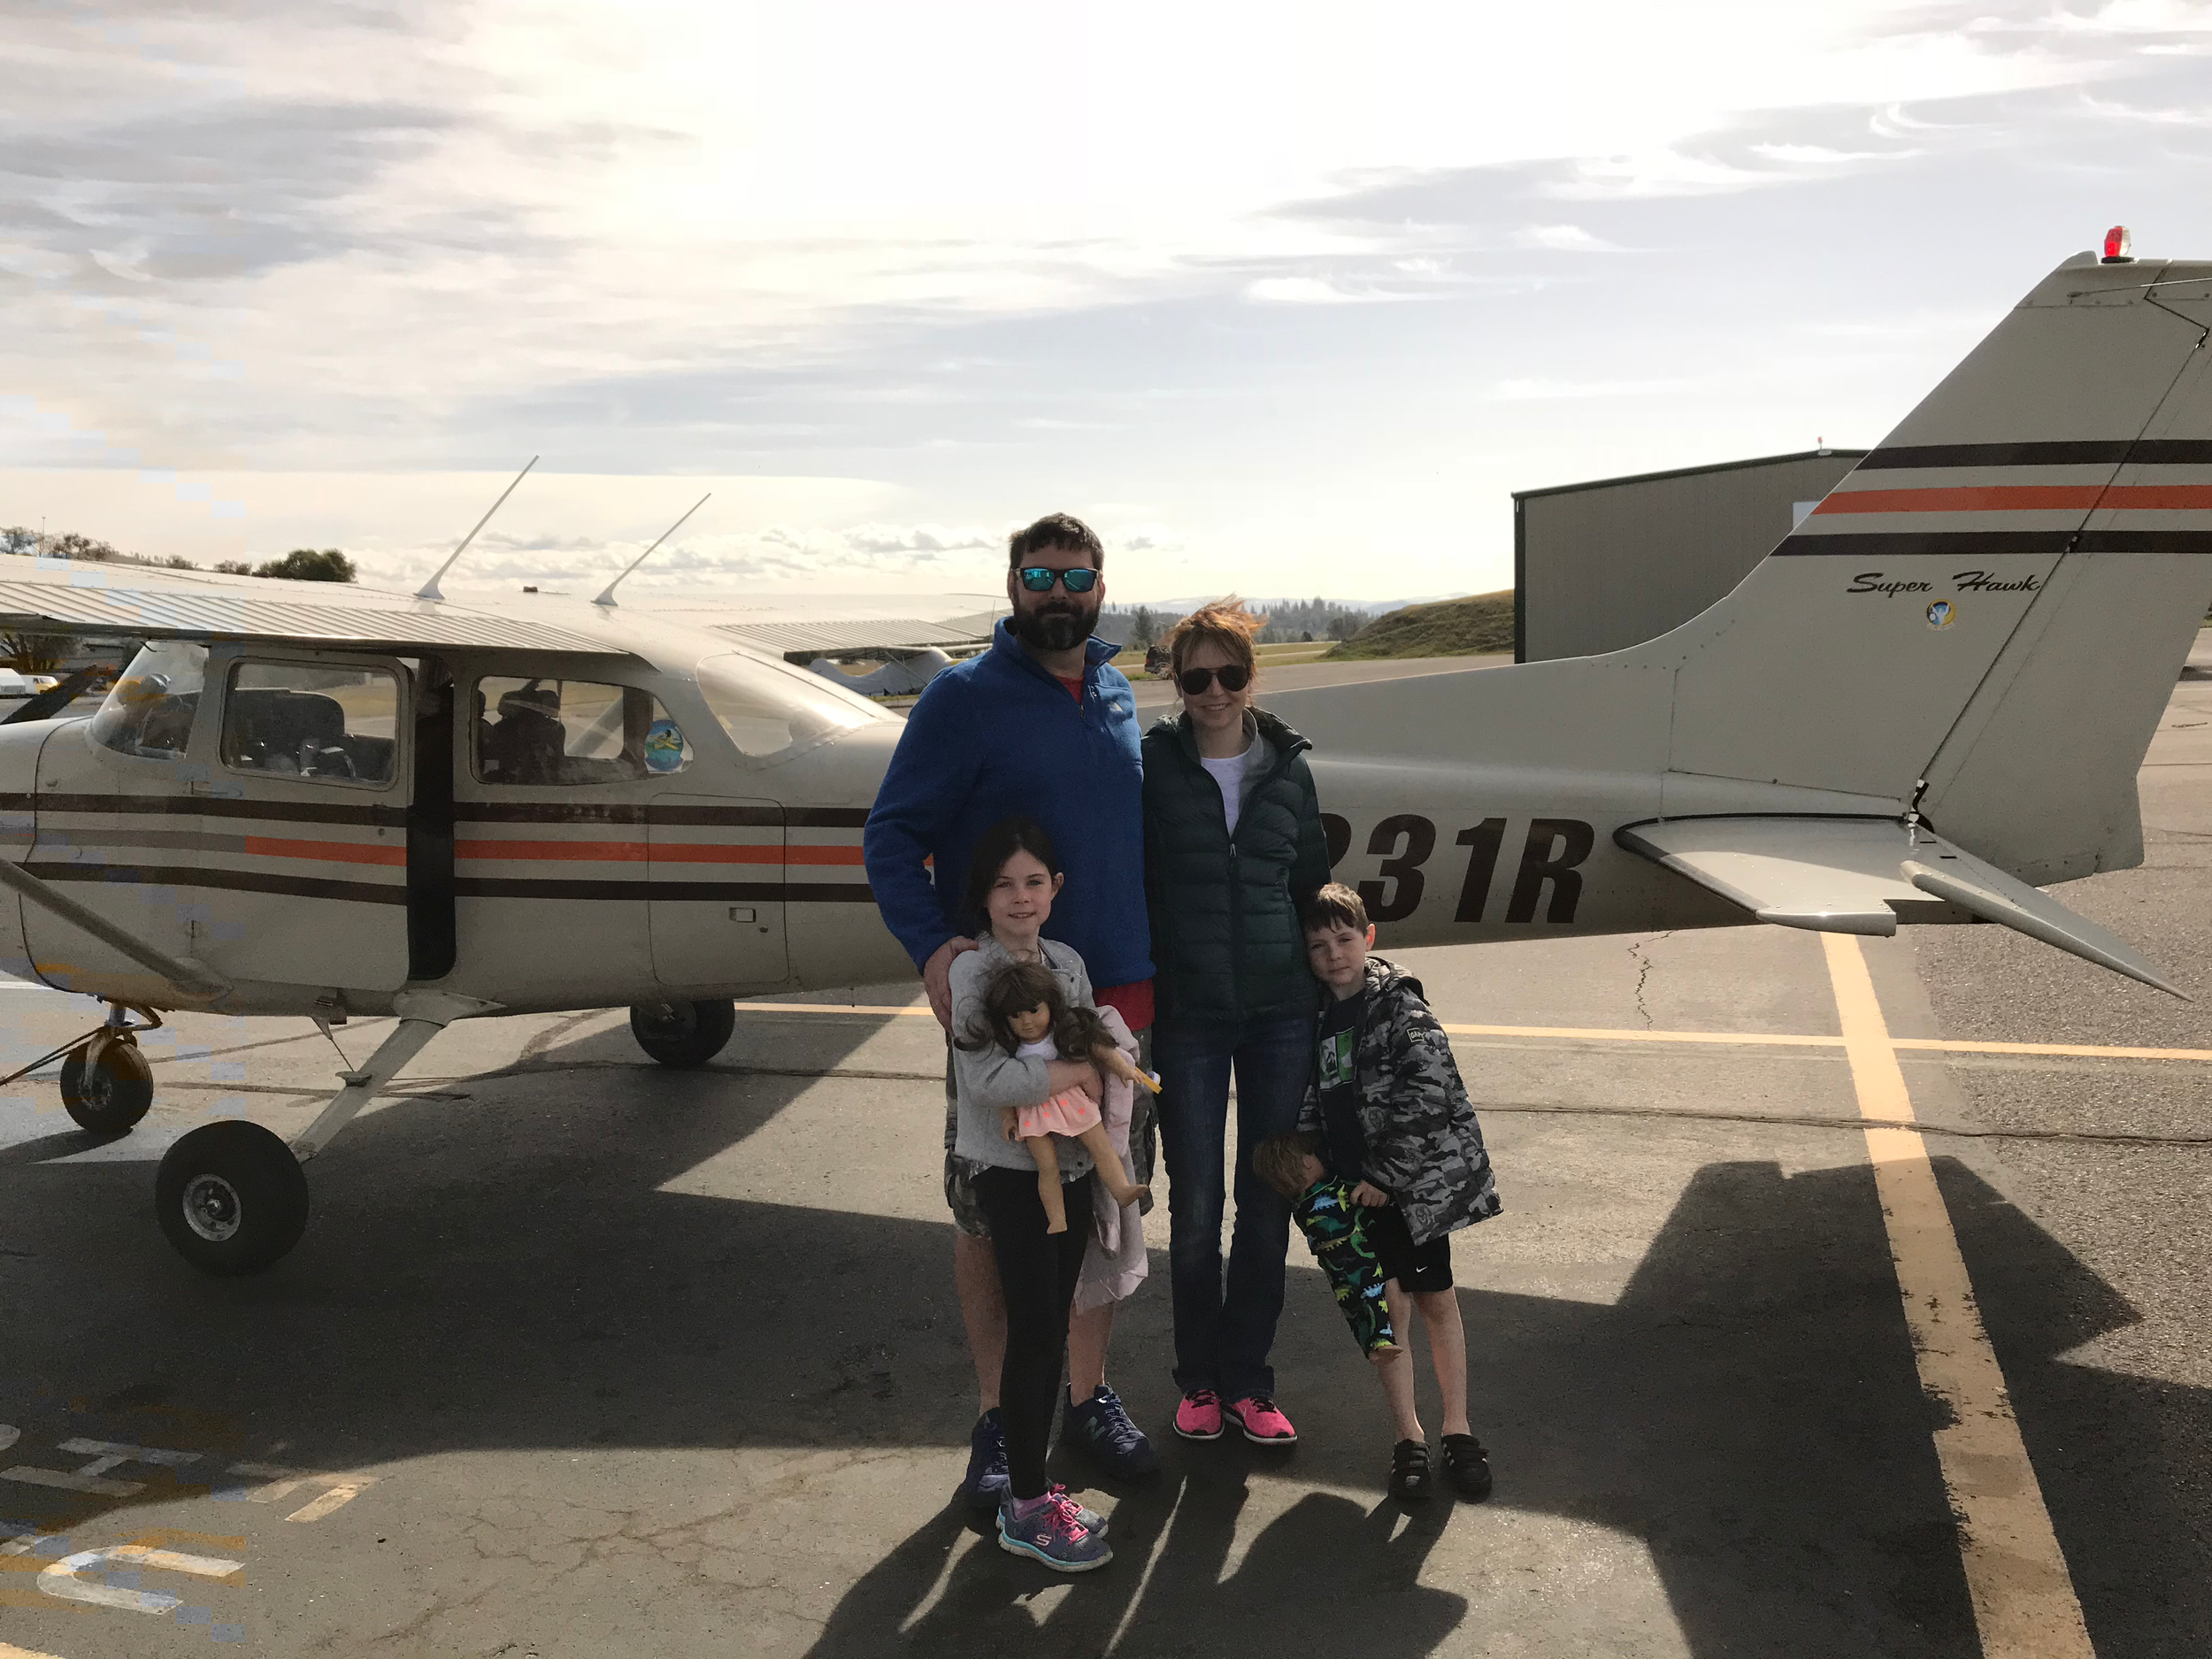 Scott Rexwinkle takes his family for their first ride after earning his private pilot certificate